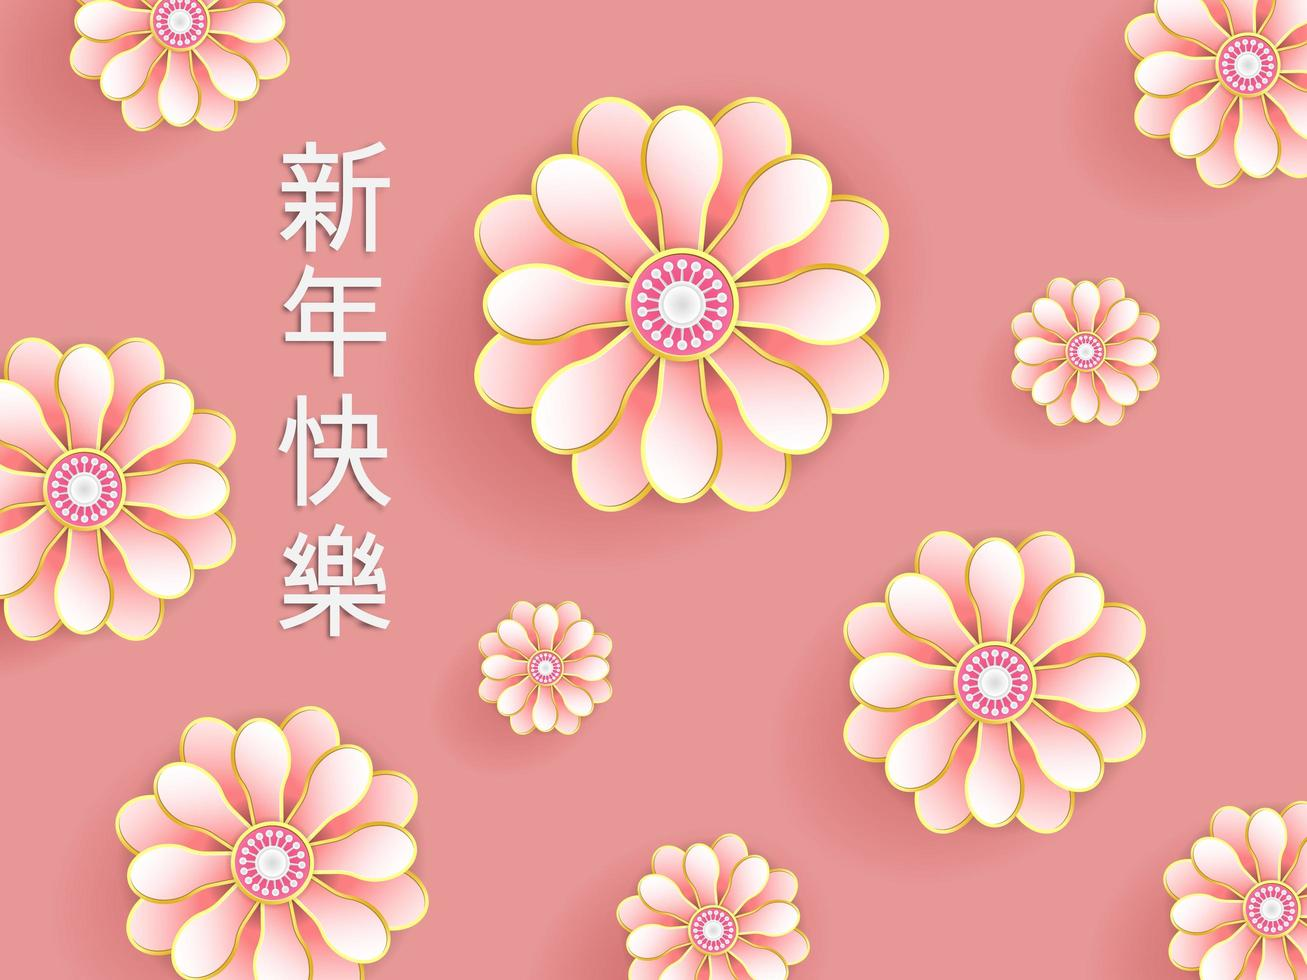 Pink flowers illustration with Chinese calligraphy vector